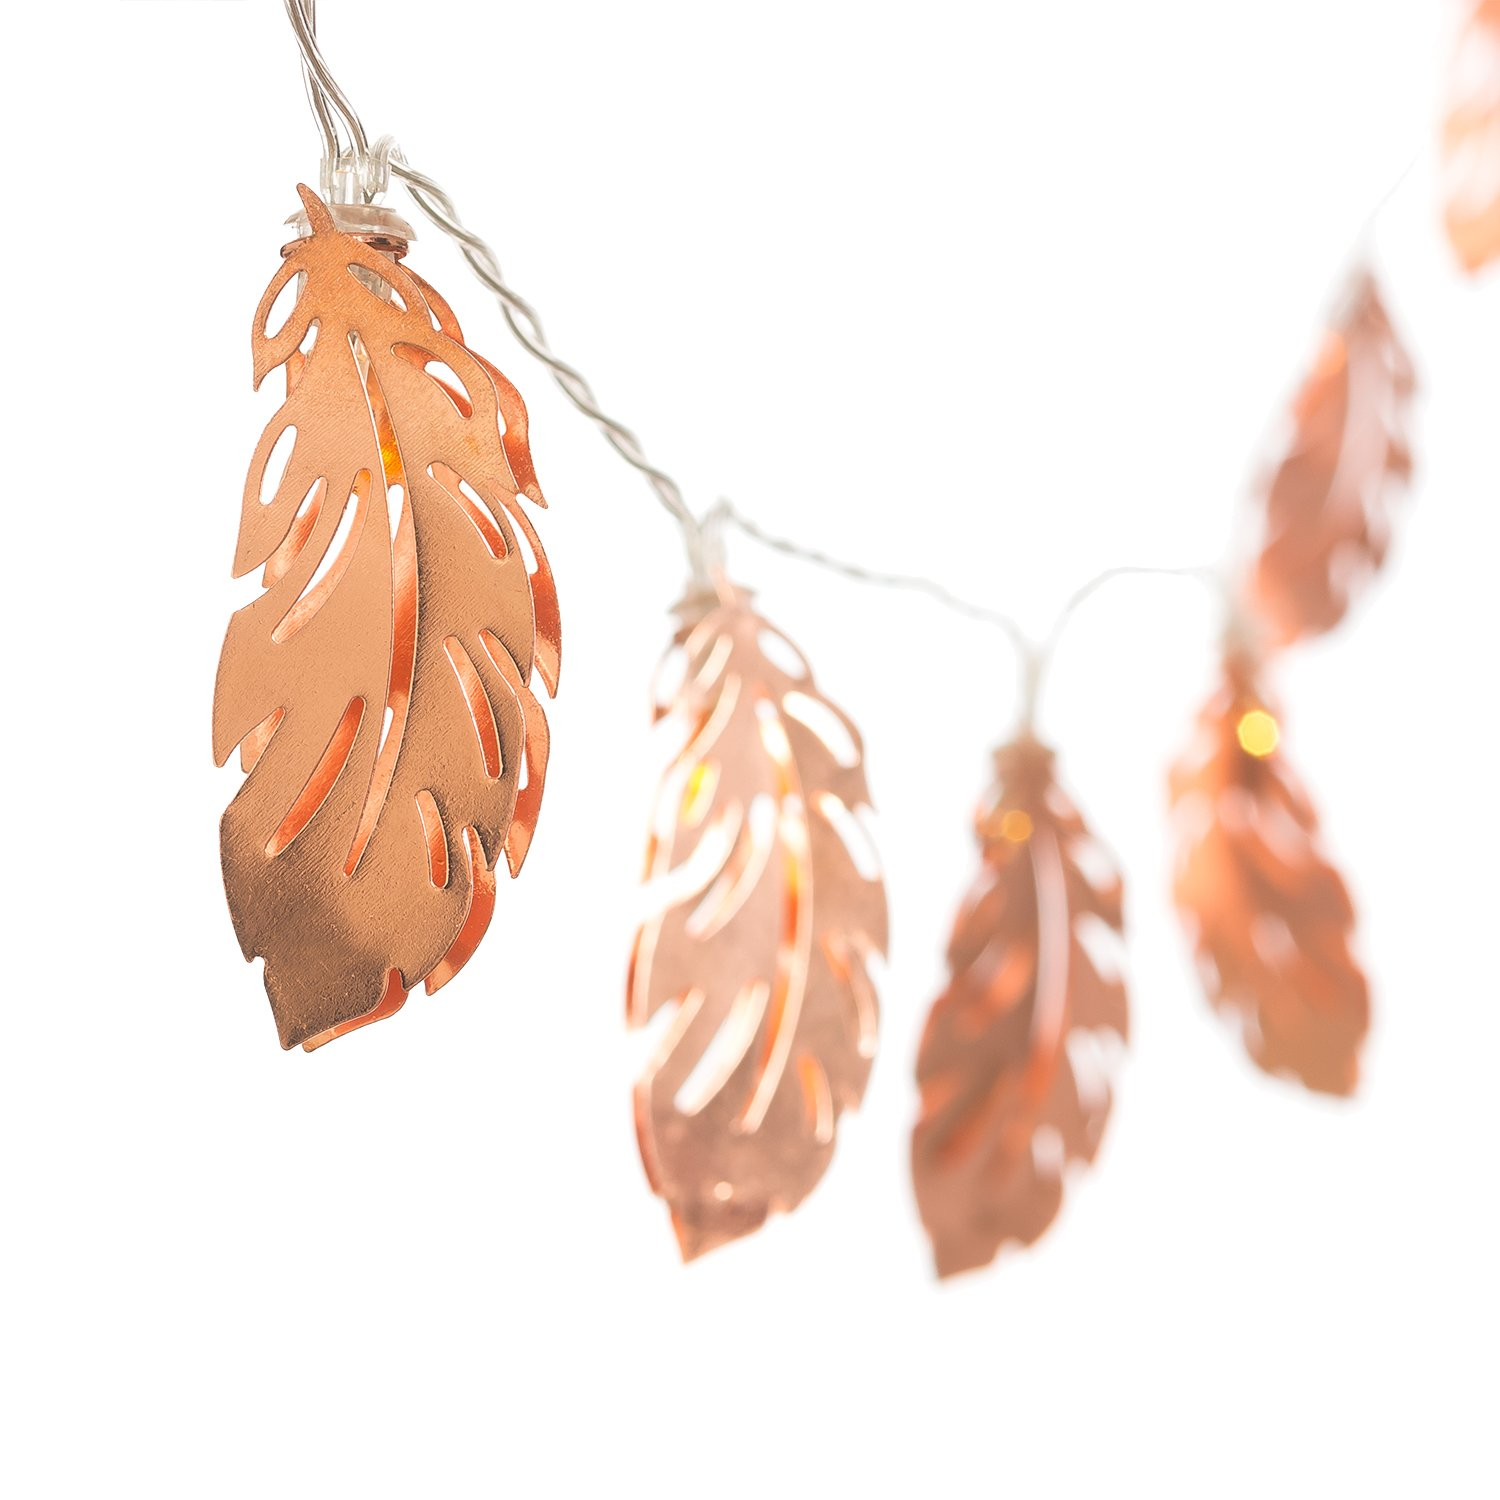 Ling's moment Rose Gold Feather Copper Metal 5Ft 10 LED Lantern String Lights USB & Battery Powered for Bedroom Decor Fairy Lights Bohemian Decorations Wall Decor Bridal Shower Patio Lighting